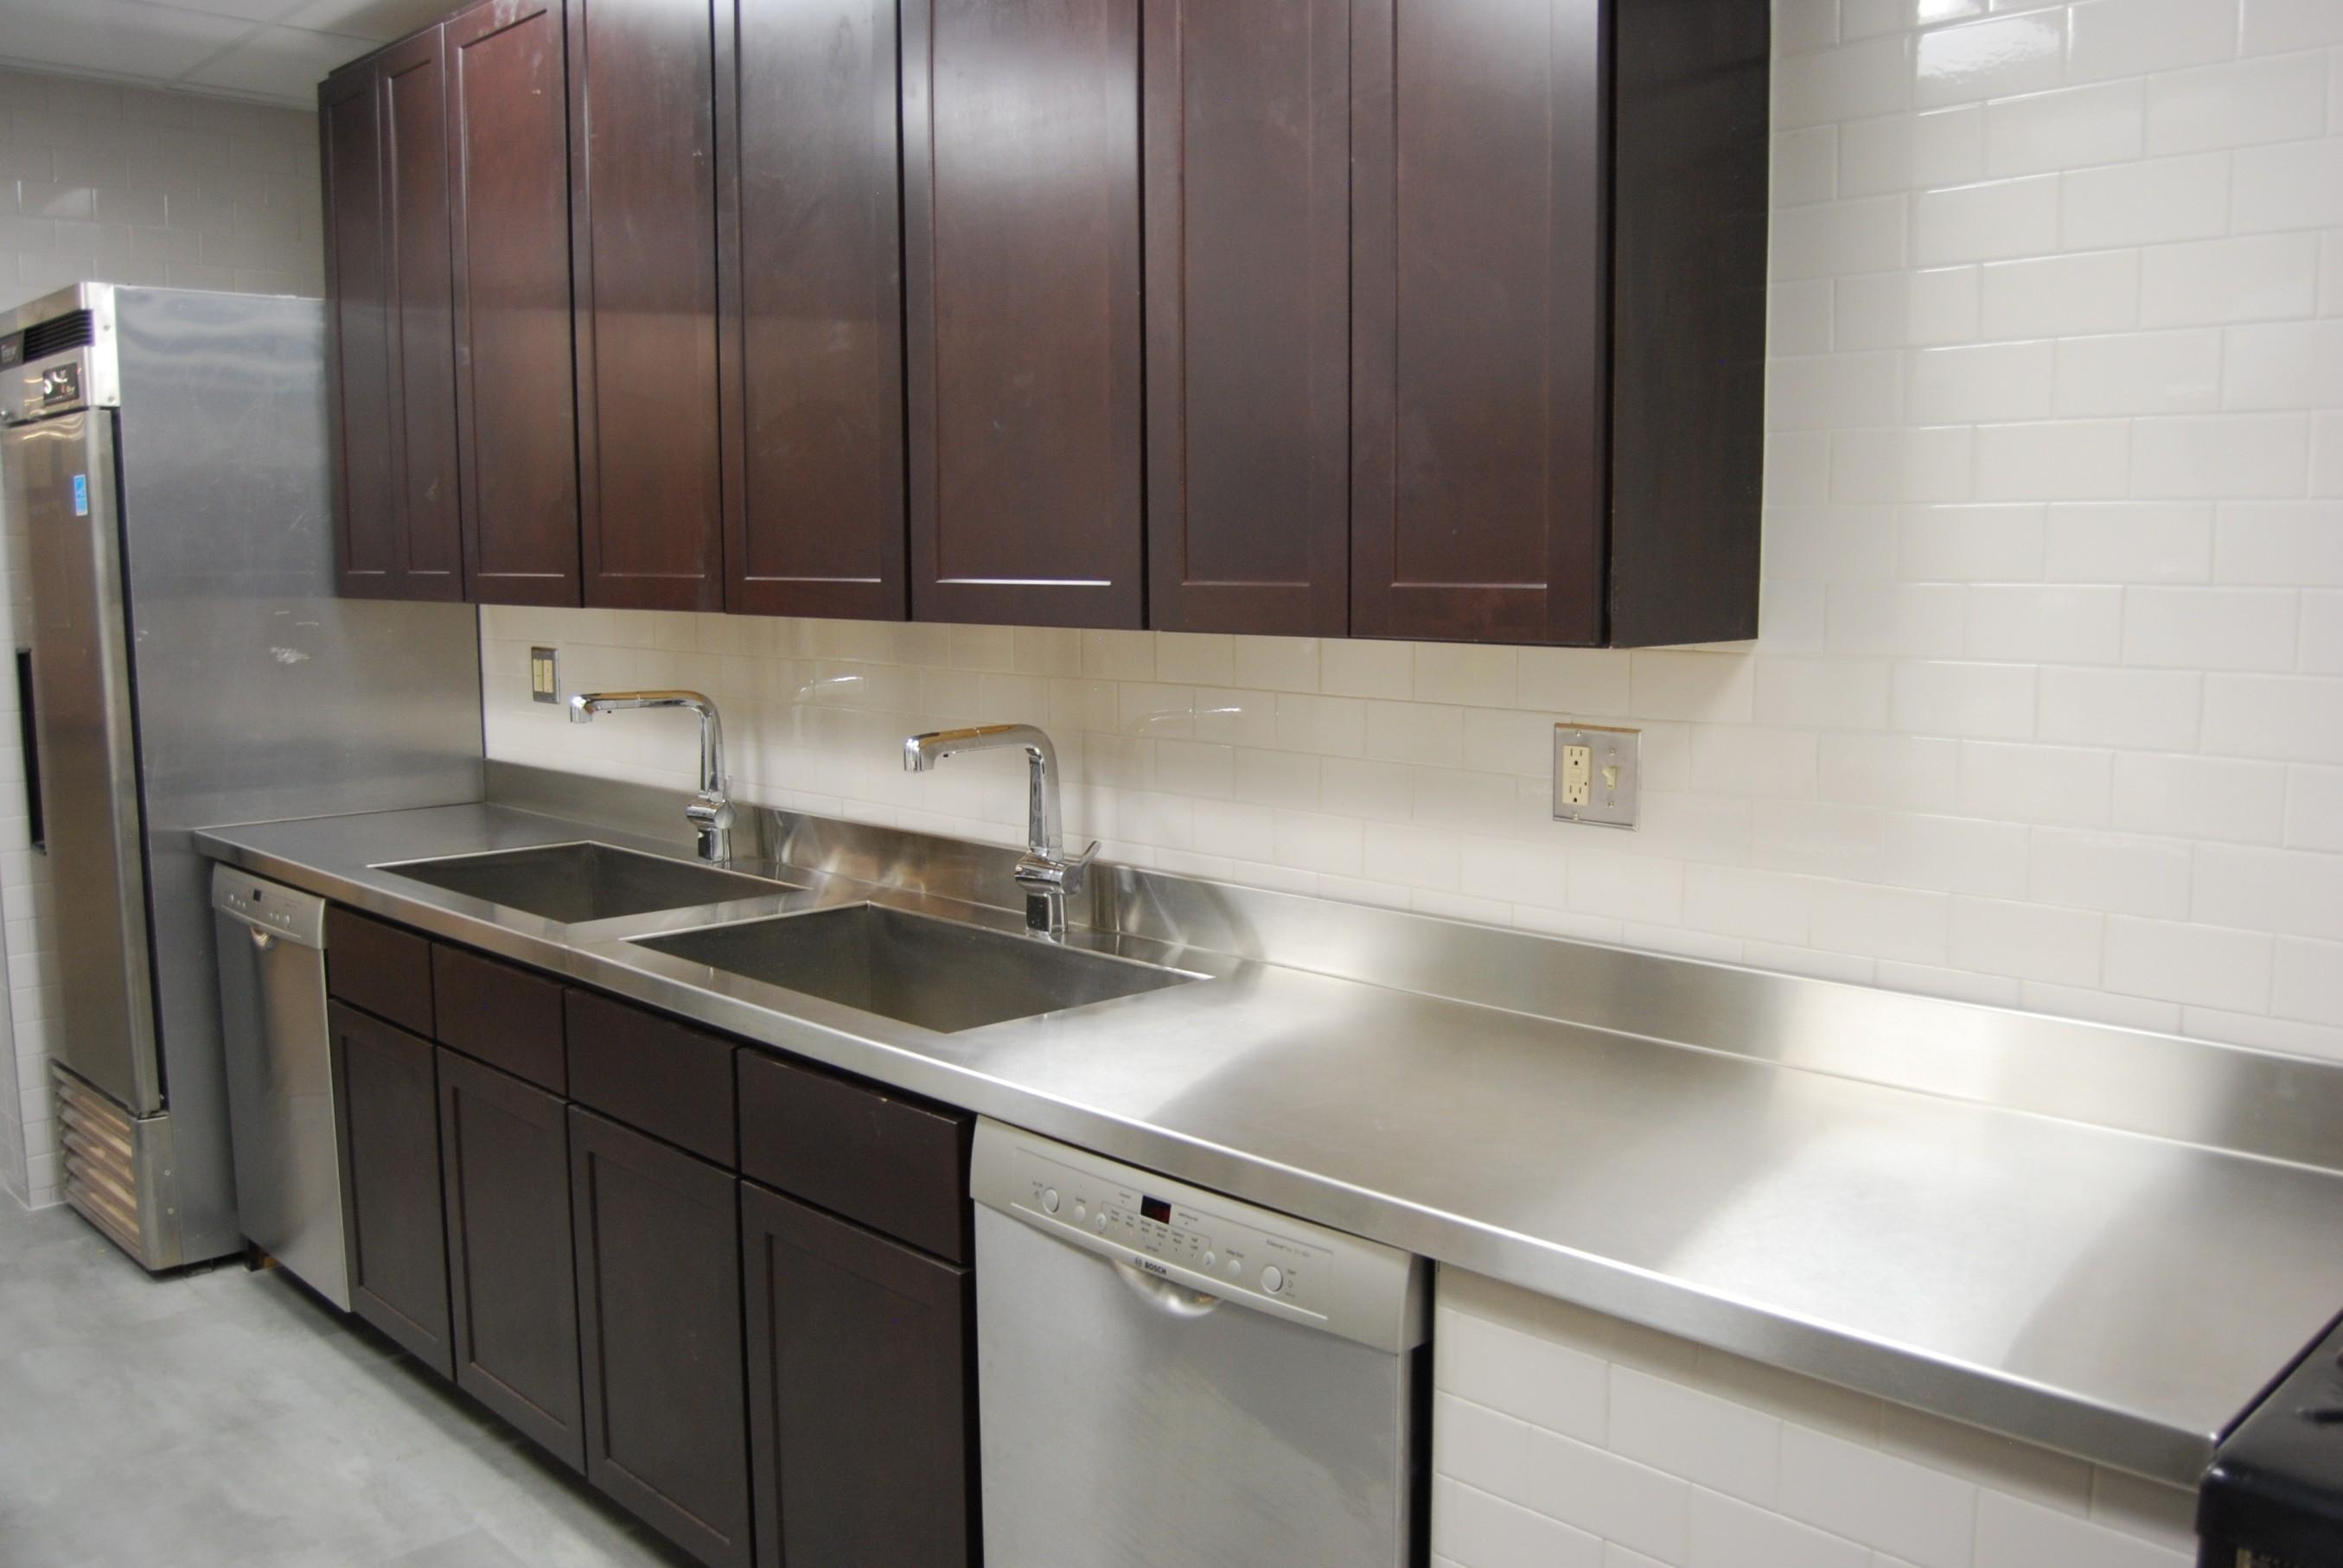 1000 Stainless Steel Countertops